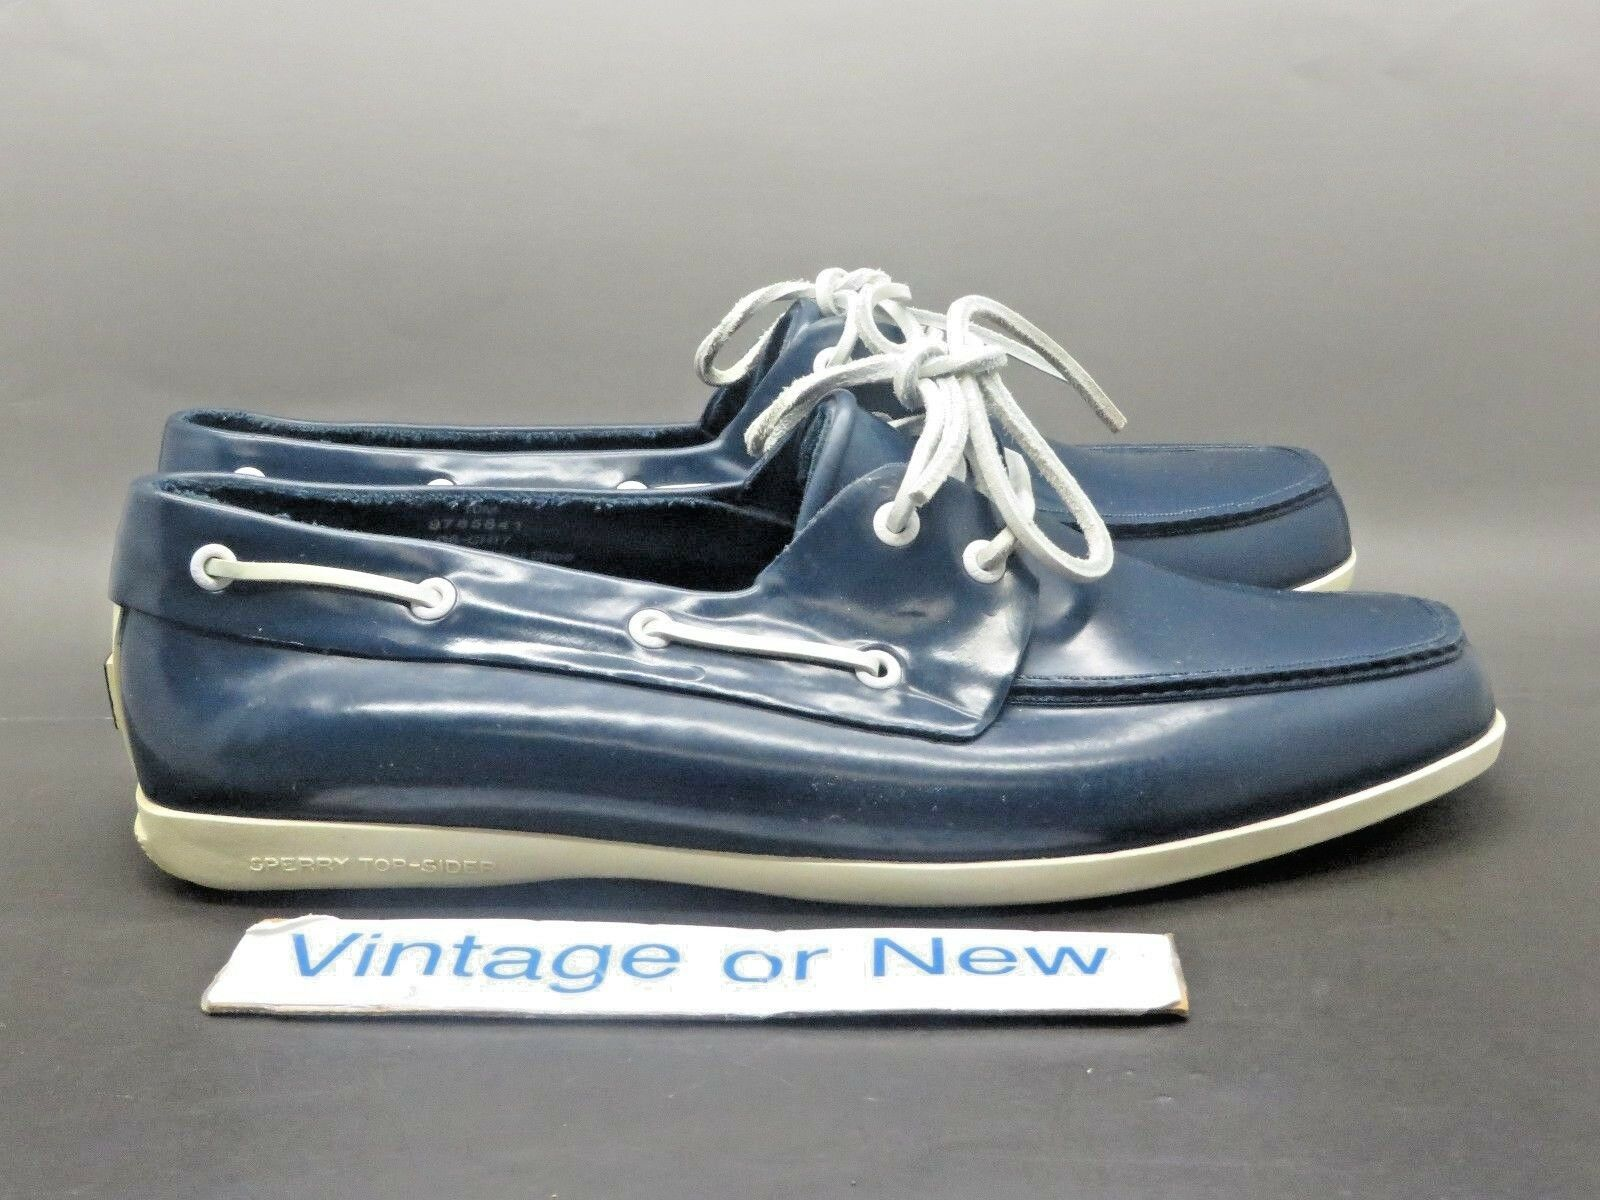 Men's Sperry Top-Sider Navy bluee White Rubber Rain Boat shoes sz 10 M